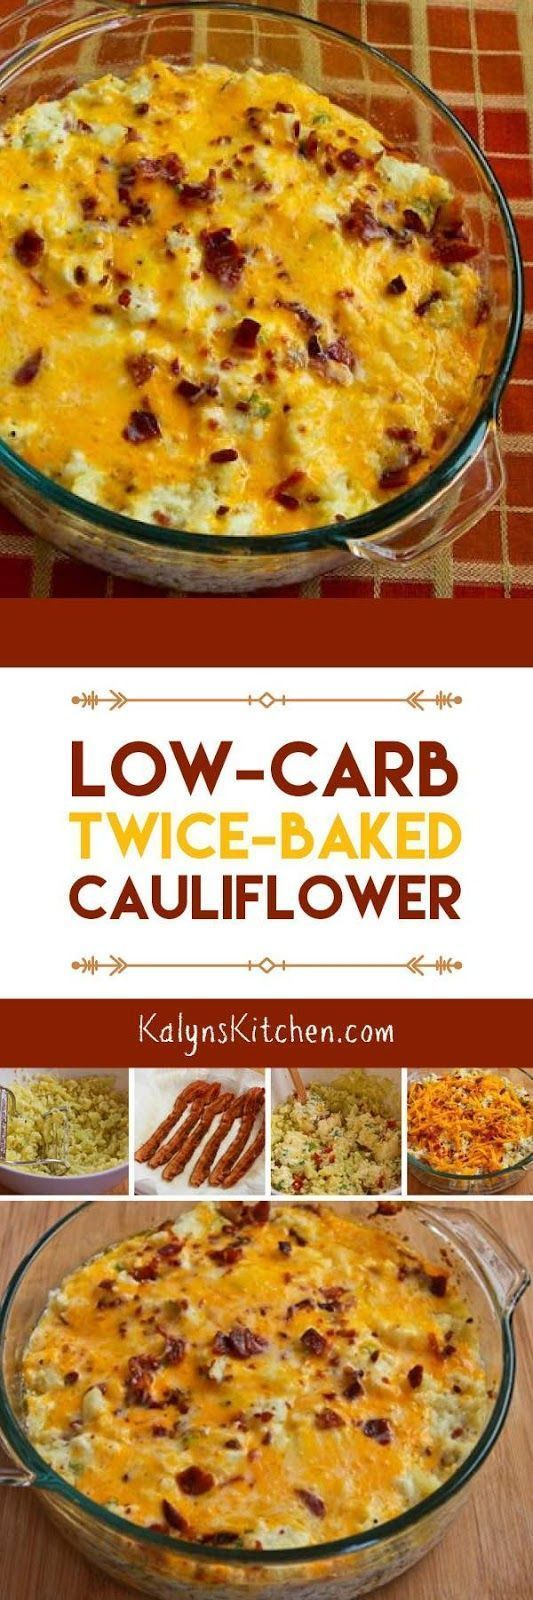 Low-Carb Twice-Baked Cauliflower has been a huge hit on the blog; that recipe has been loved by everyone who tries it! And this delicious twice-baked cauliflower is also Keto, low-glycemic, and gluten-free. [found on http://KalynsKitchen.com]